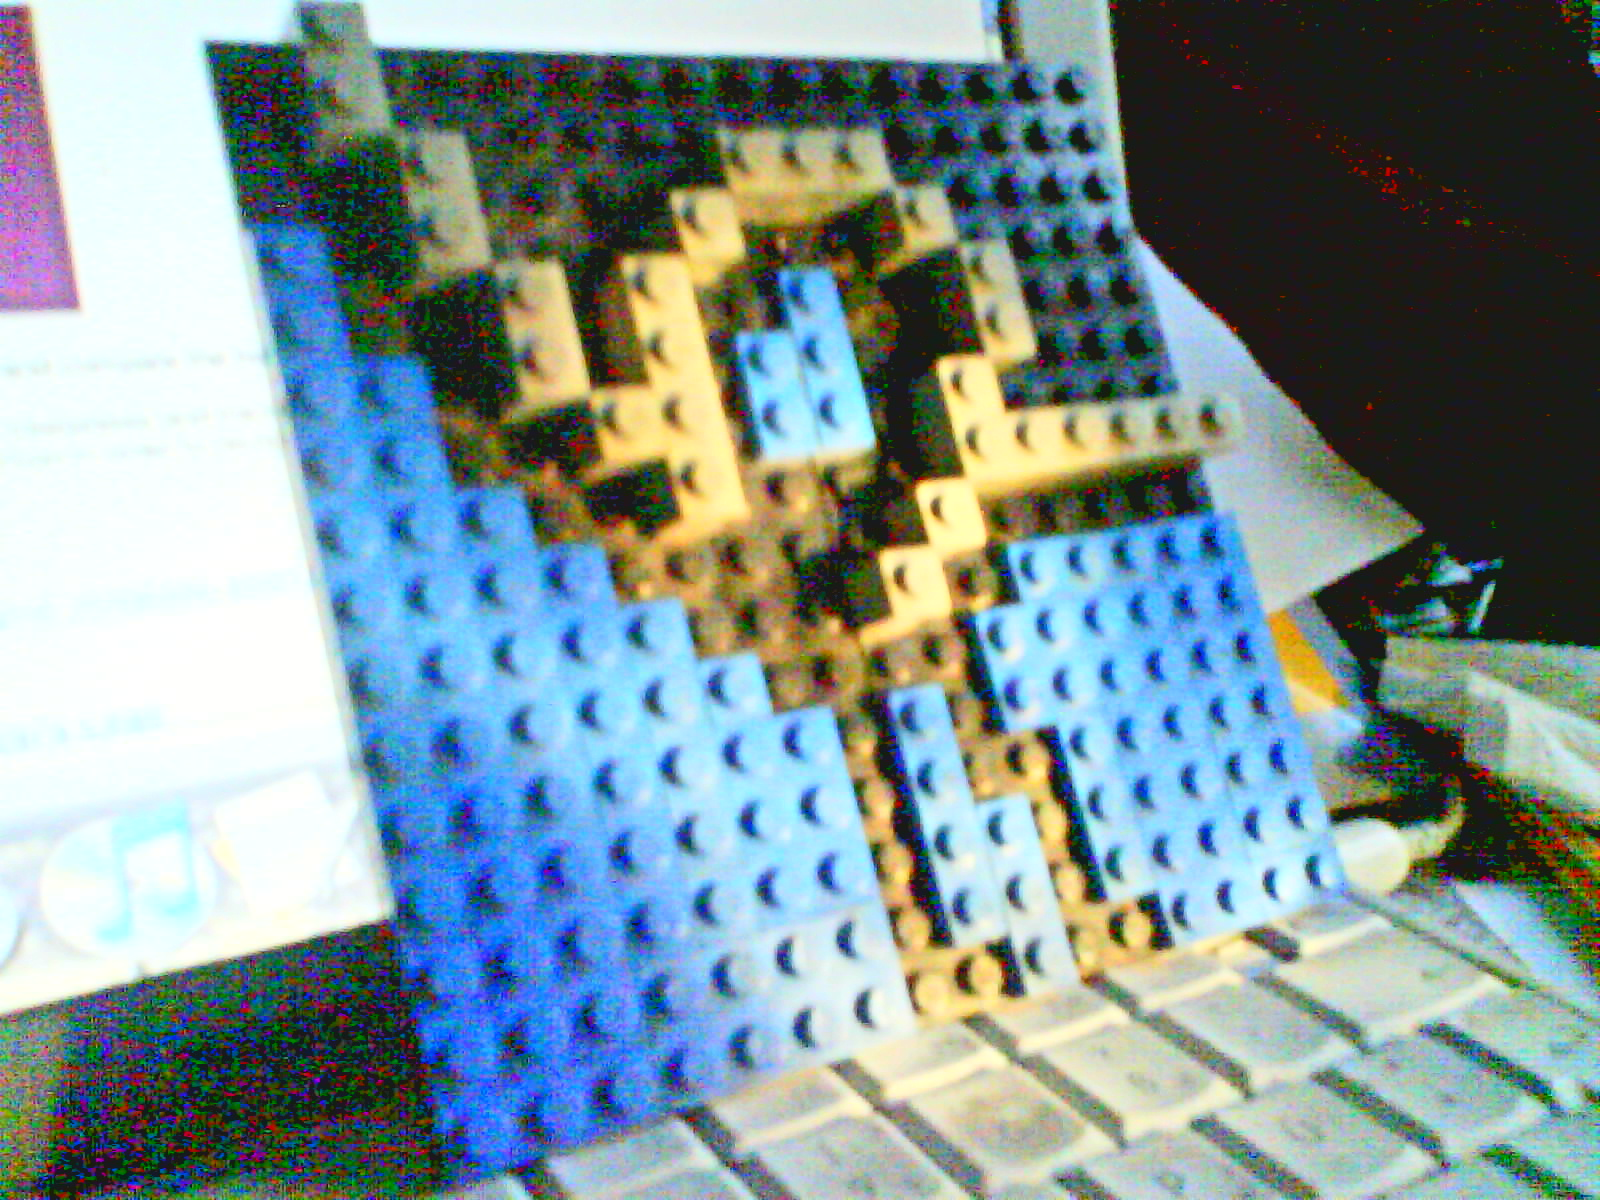 The Lyrois Favicon in Lego